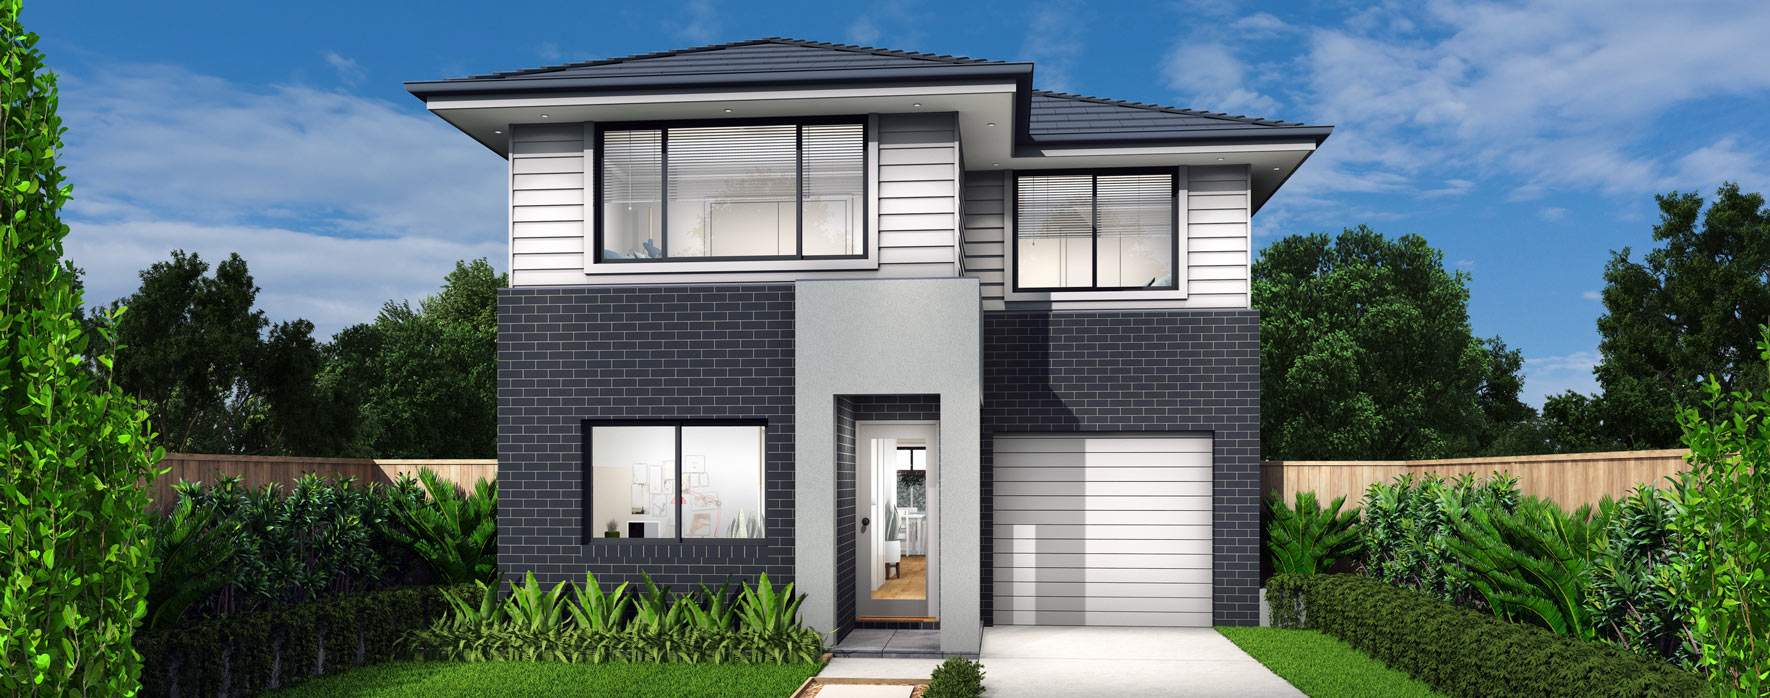 Bondi Double Storey House Design With 4 Bedrooms Mojo Homes